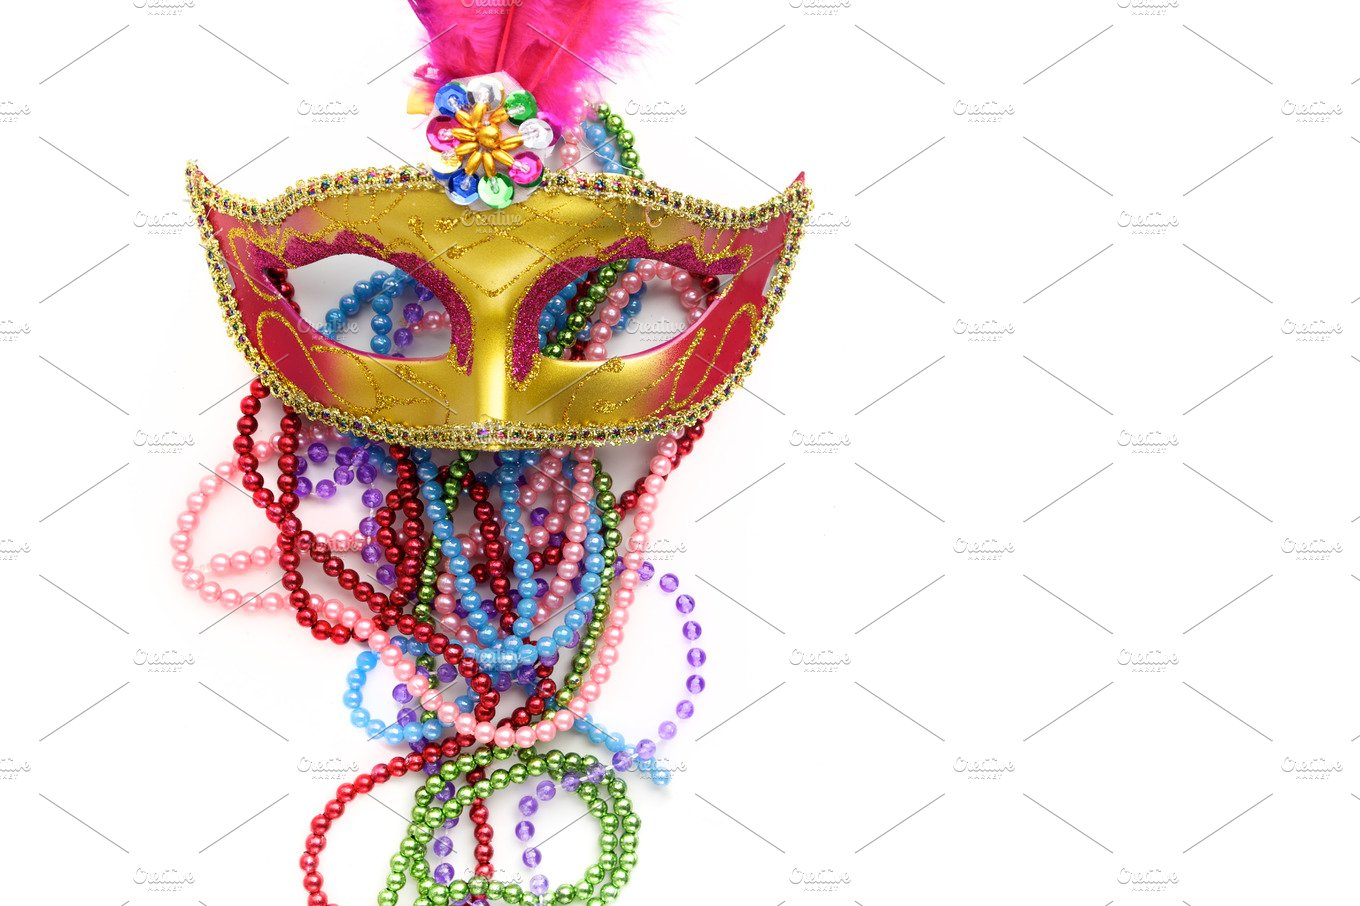 hellogiggles at news history carnival gras is are beads mardi interesting the thrown why